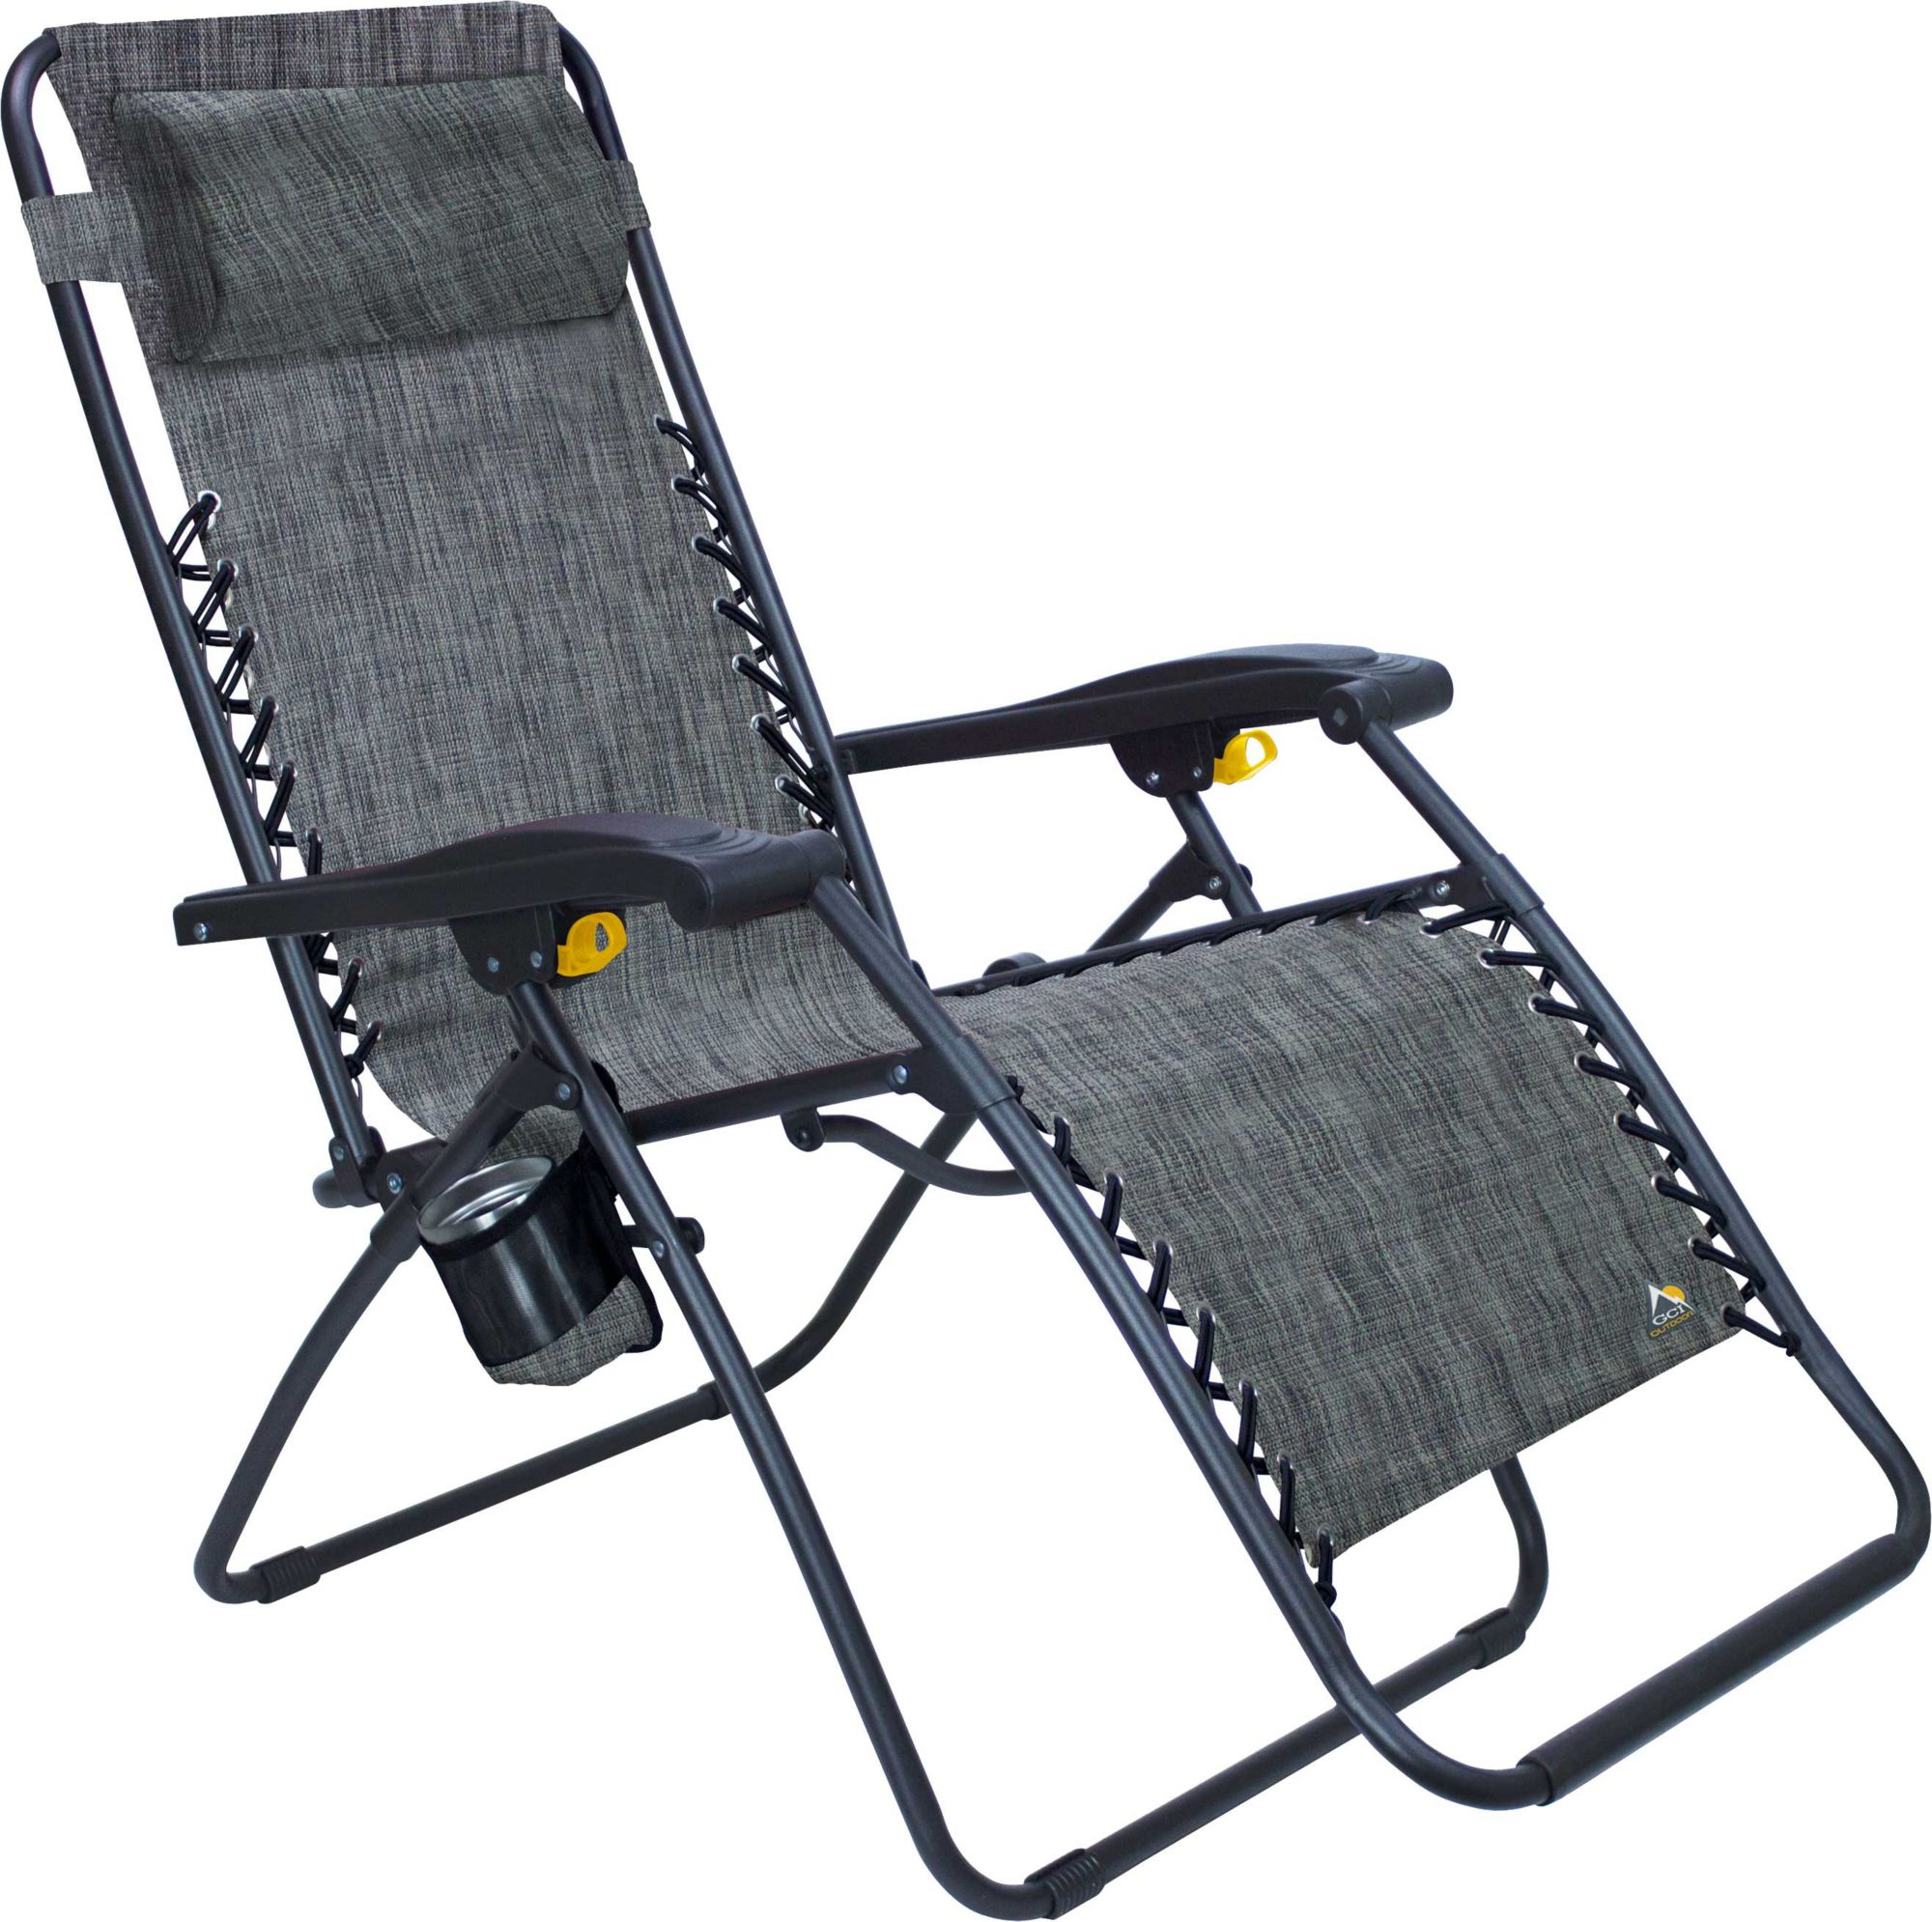 gci outdoor zero gravity chair dick s sporting goods